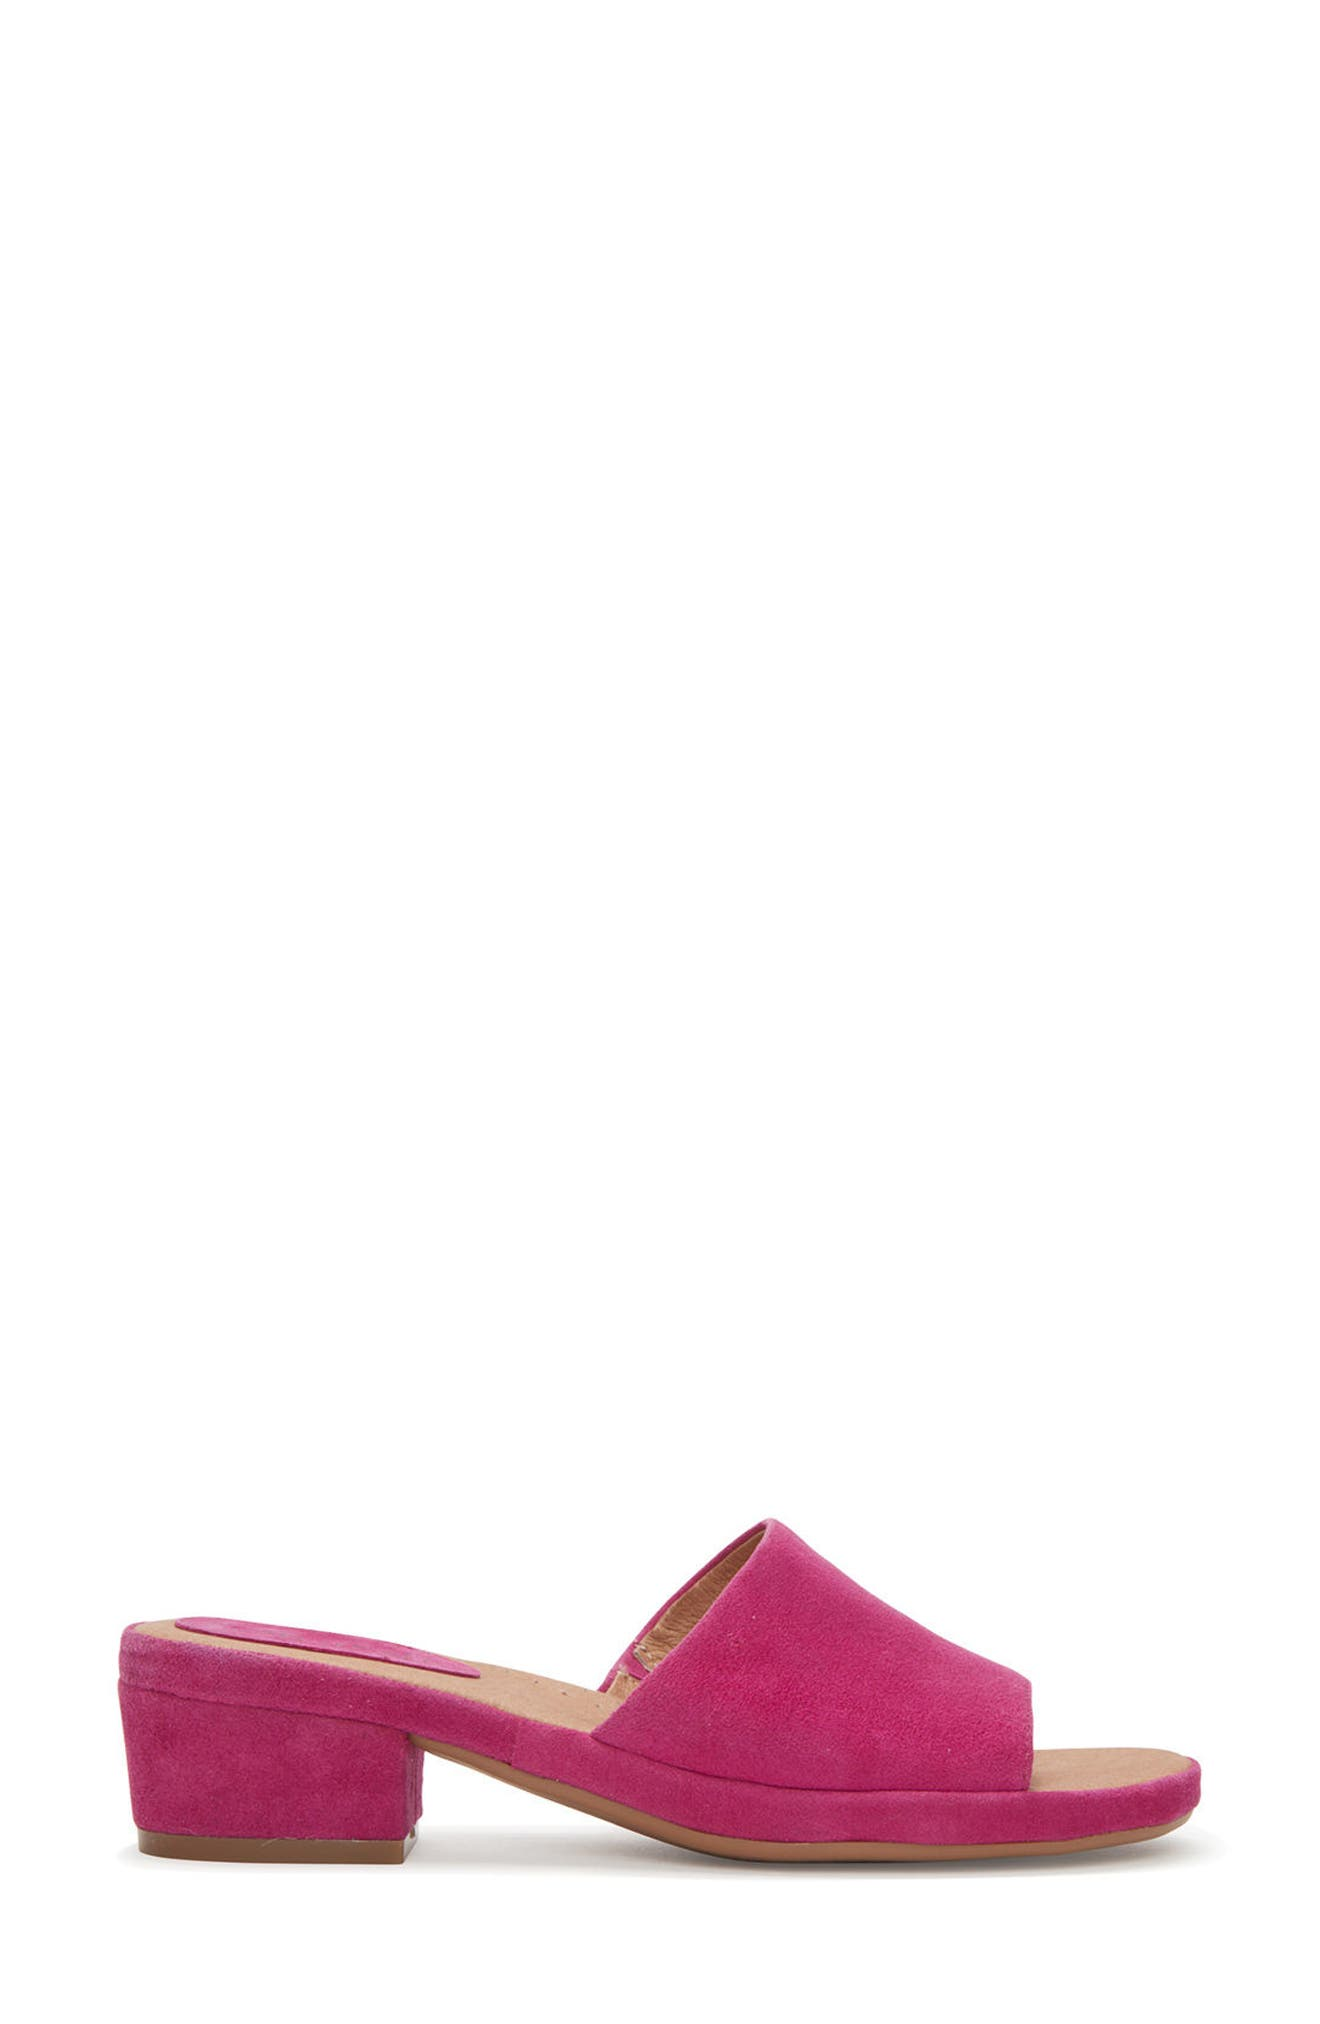 Adam Tucker Yolo Sandal,                             Alternate thumbnail 3, color,                             Fuchsia Suede